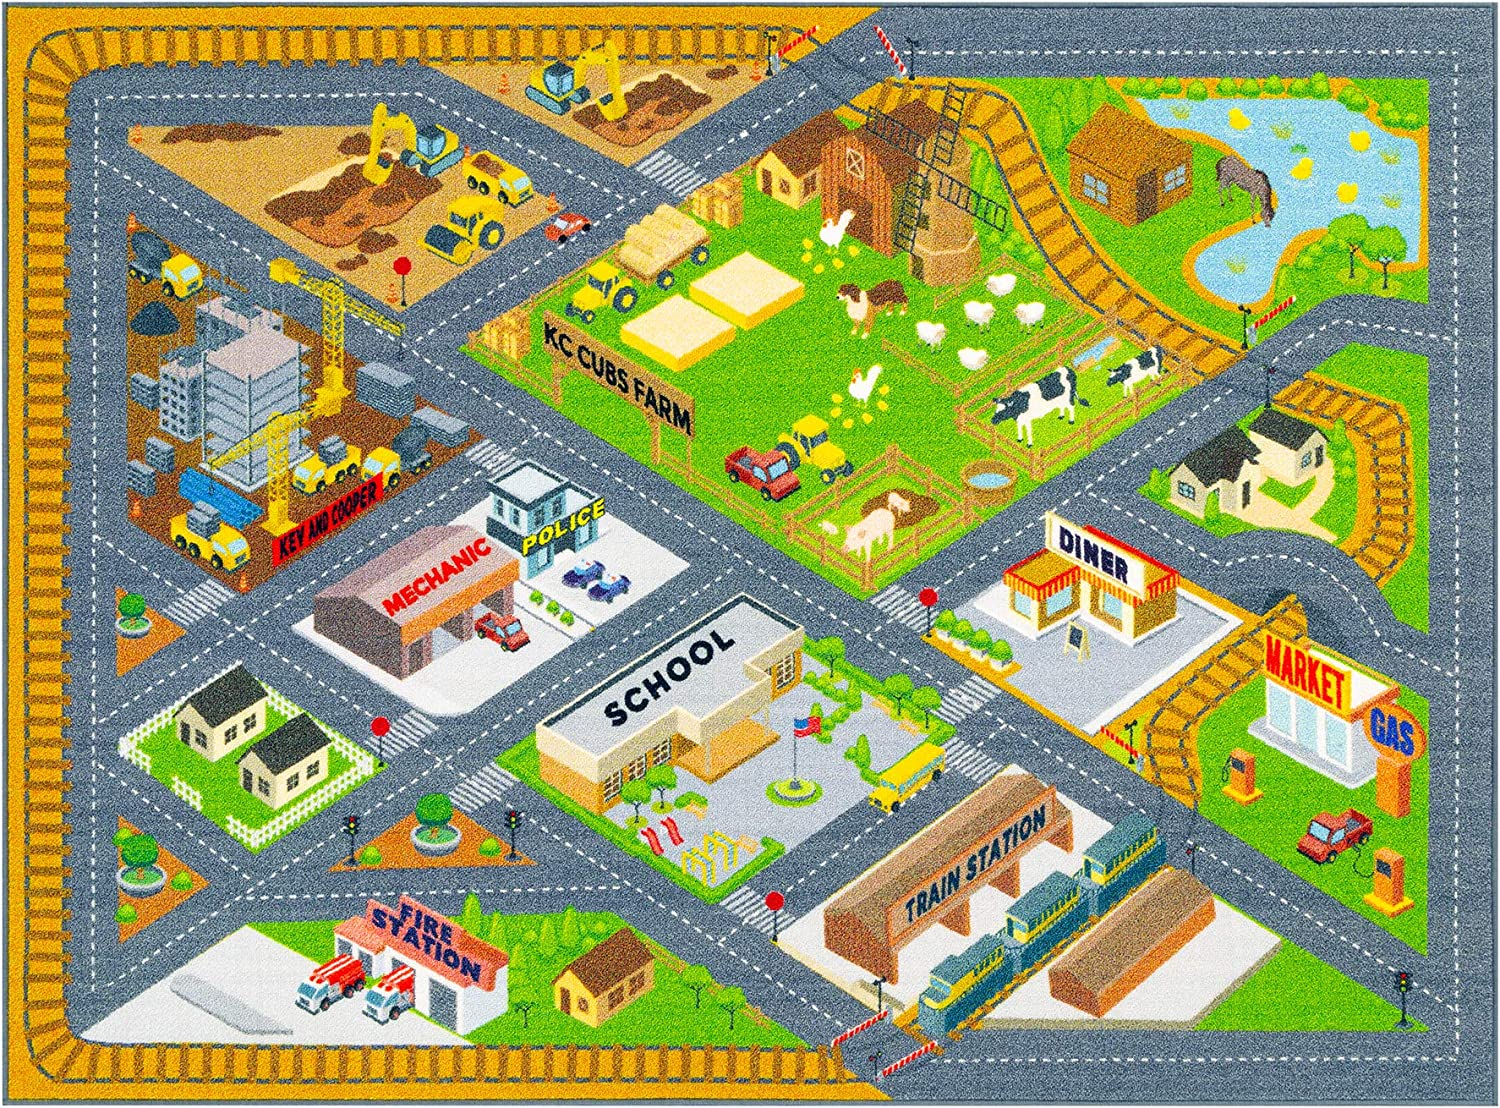 Amazon Com Kc Cubs Playtime Collection Country Farm Road Map With Construction Site Educational Learning Area Rug Carpet For Kids And Children Bedroom And Playroom 5 0 X 6 6 Kitchen Dining